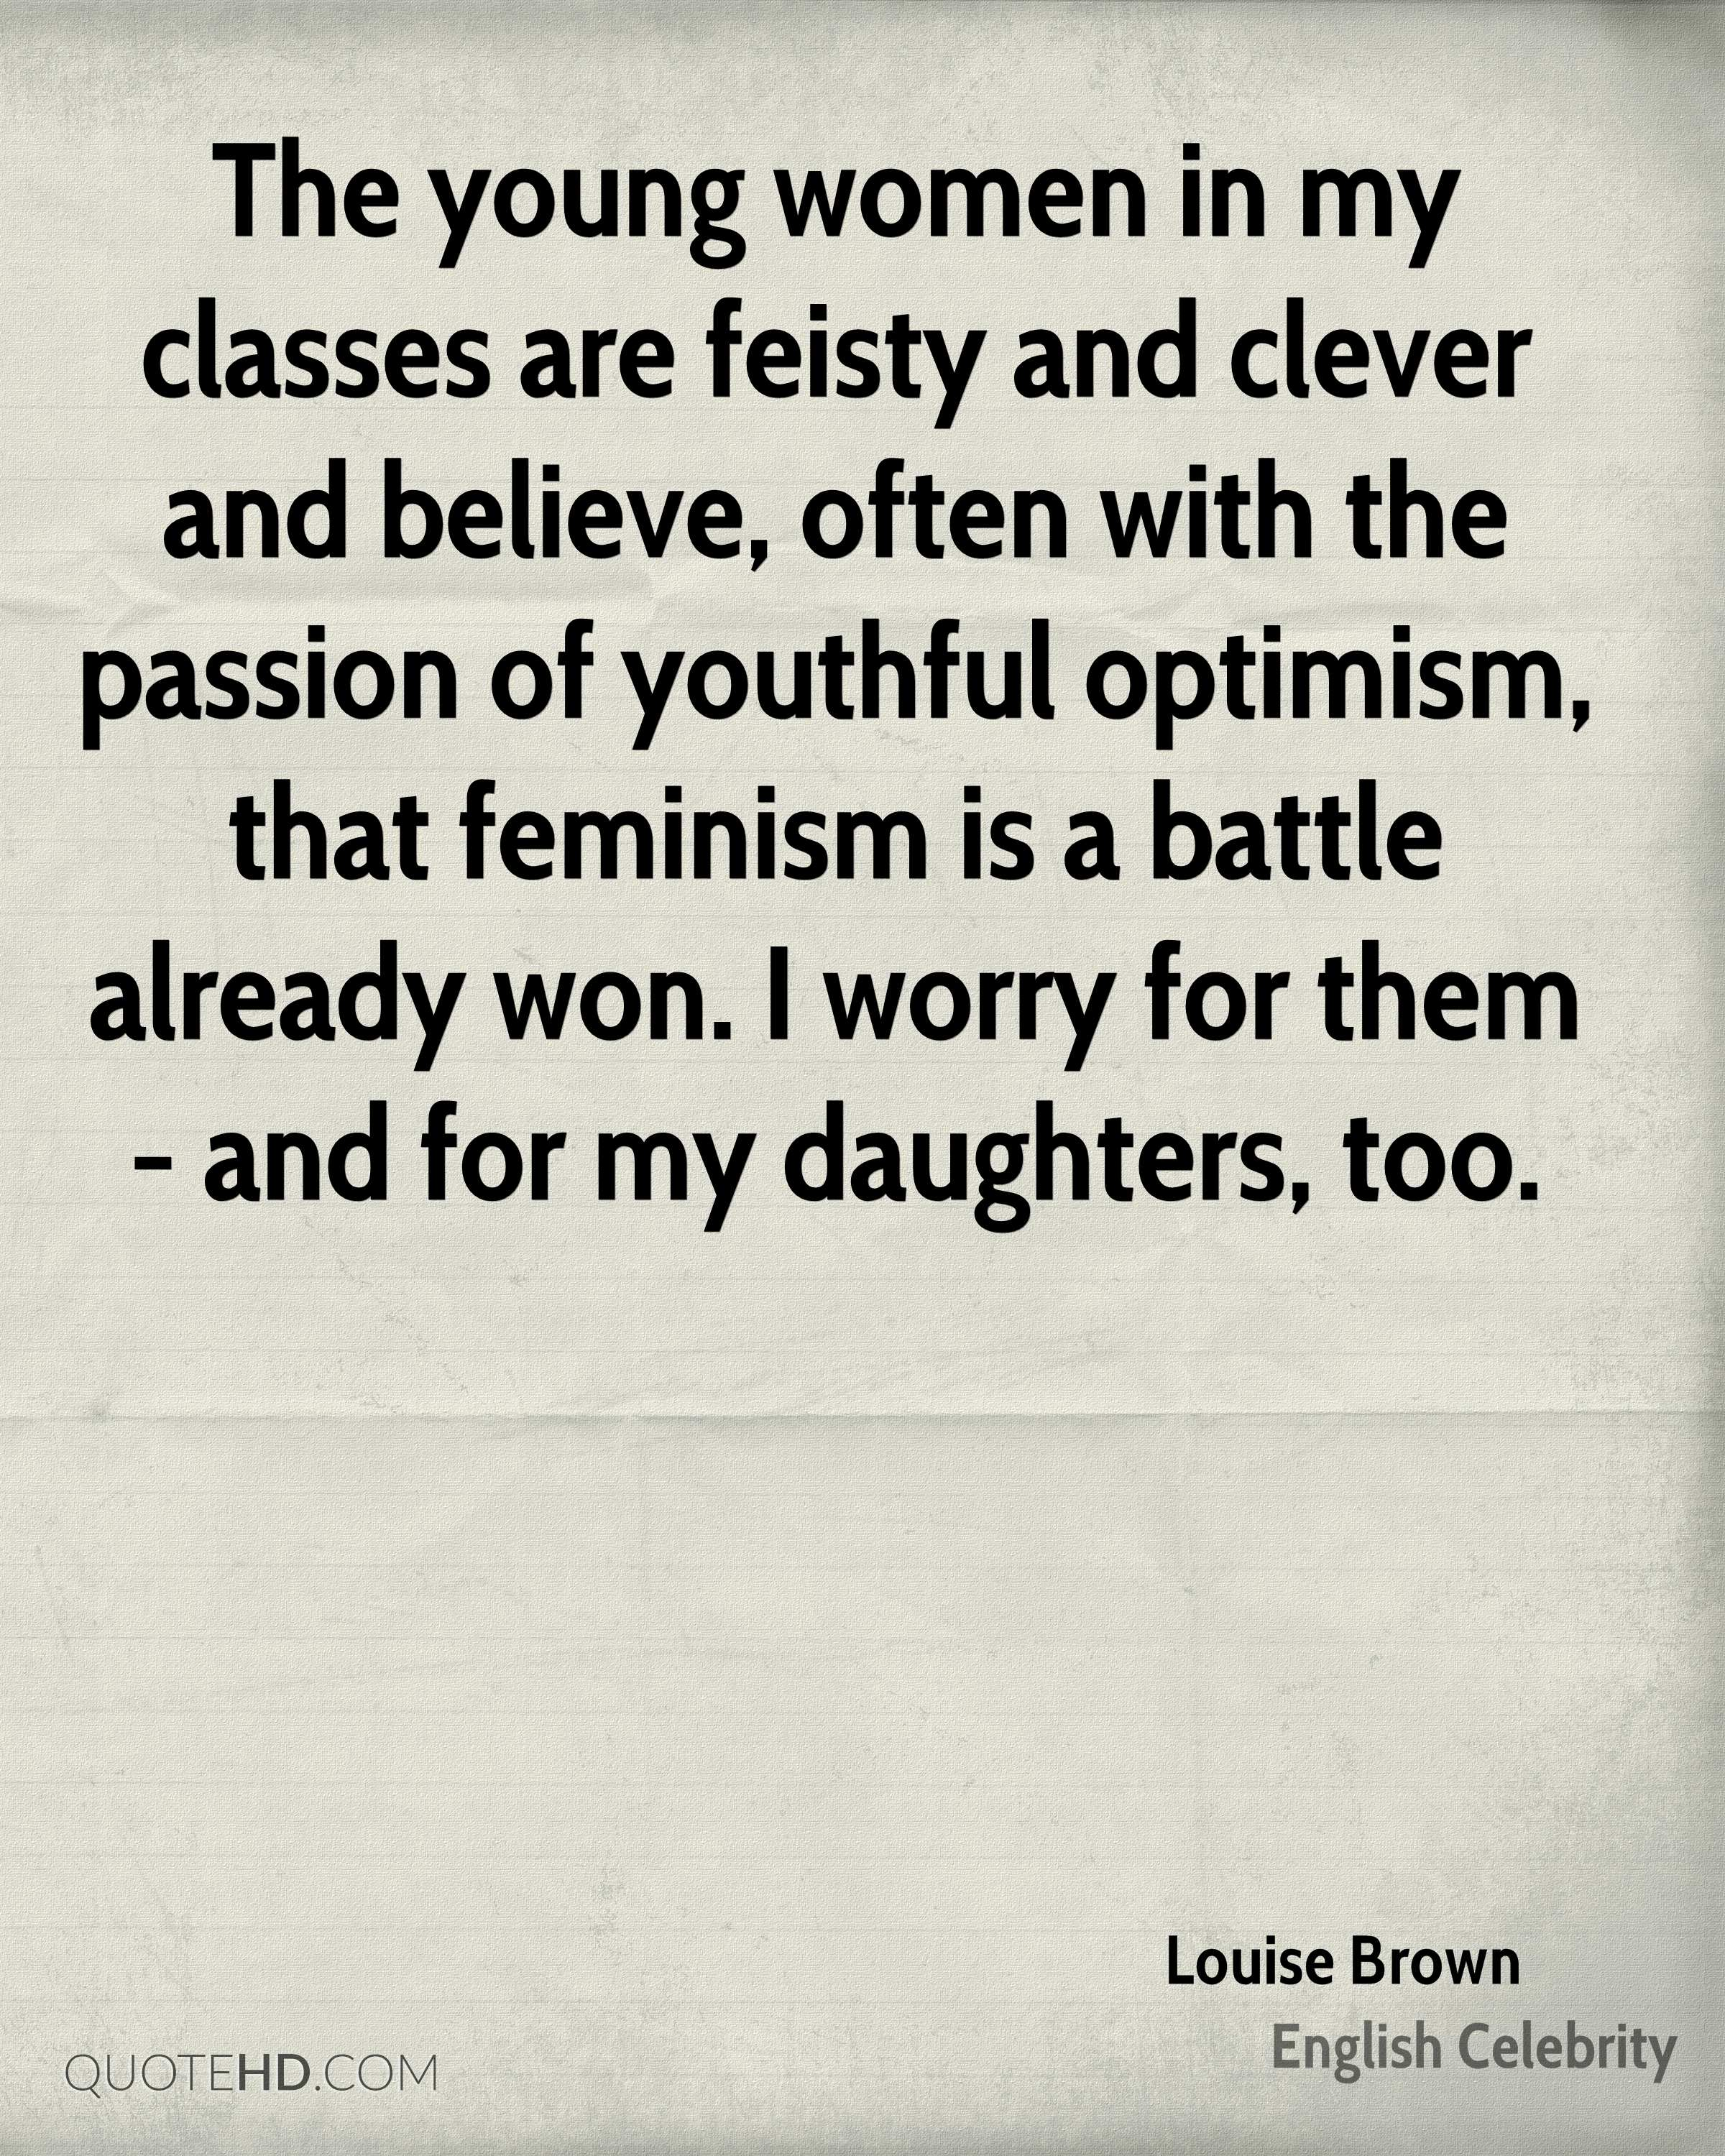 The young women in my classes are feisty and clever and believe, often with the passion of youthful optimism, that feminism is a battle already won. I worry for them - and for my daughters, too.